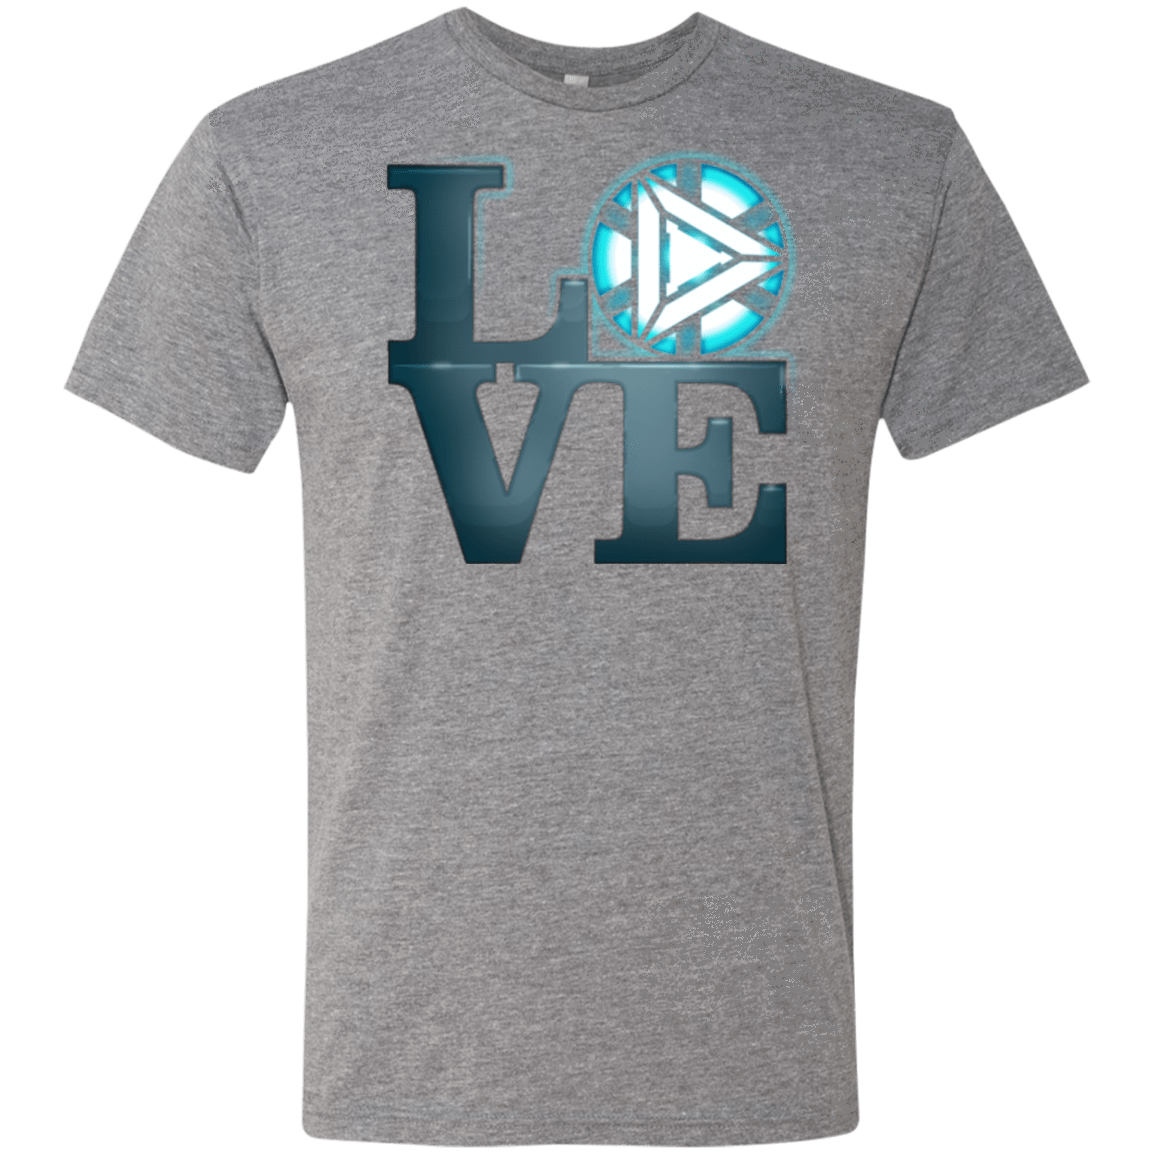 T-Shirts Premium Heather / Small Love Stark Men's Triblend T-Shirt